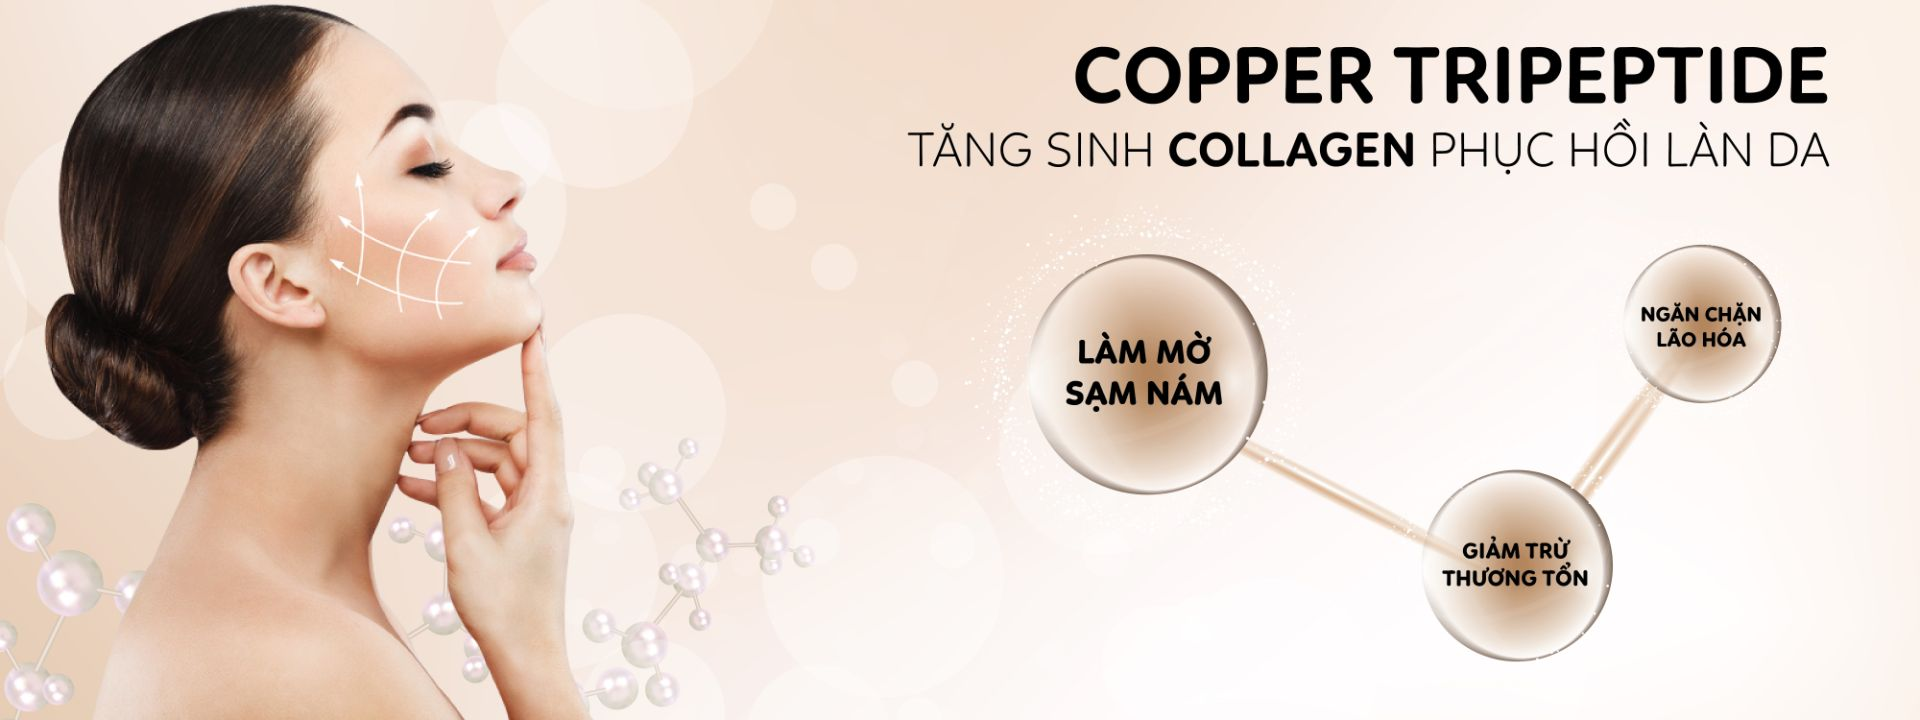 Cấy Copper Tripeptide